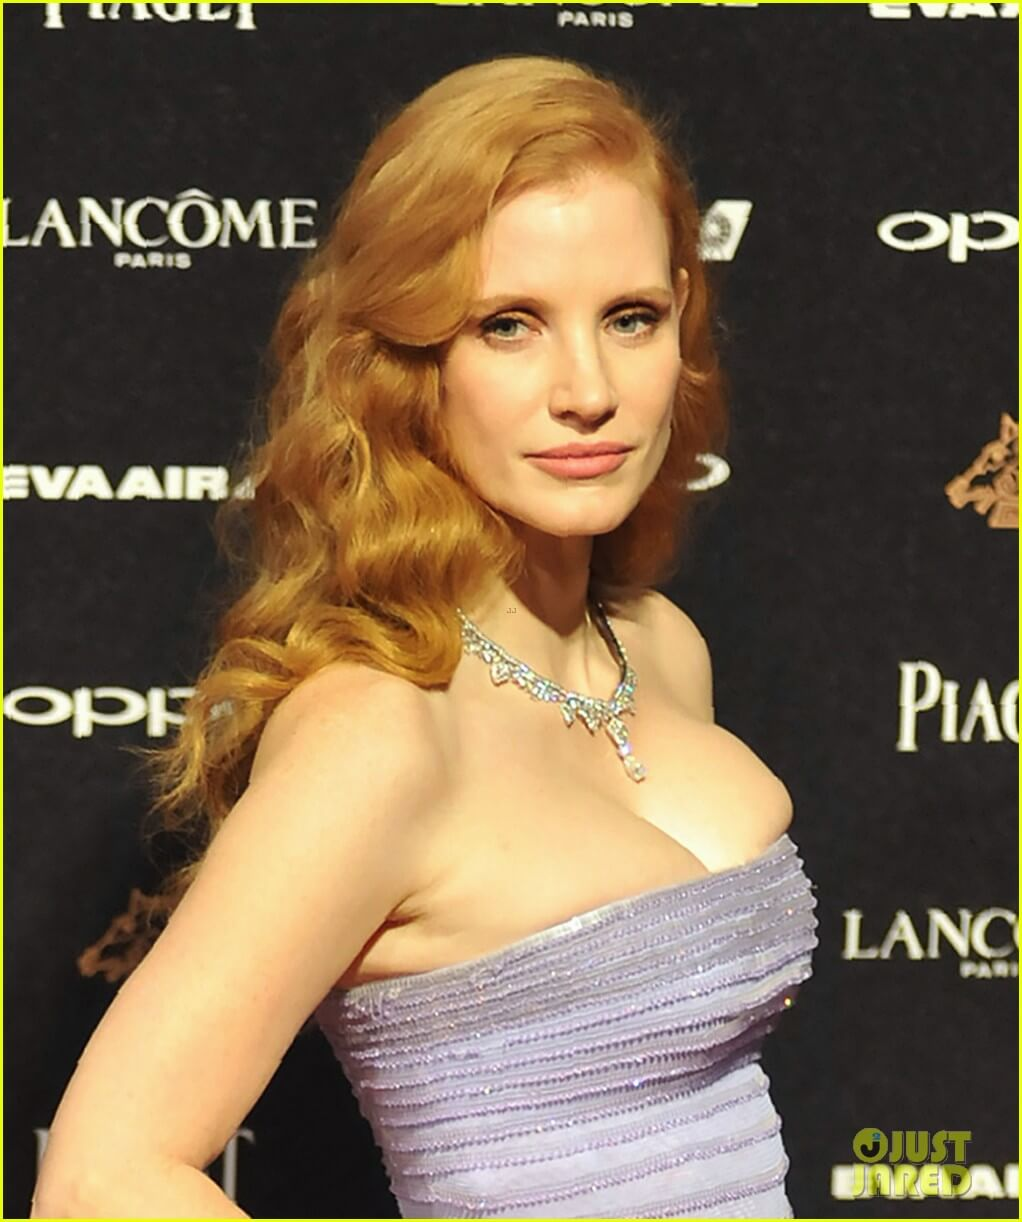 Topless jessica chastain Jessica Chastain